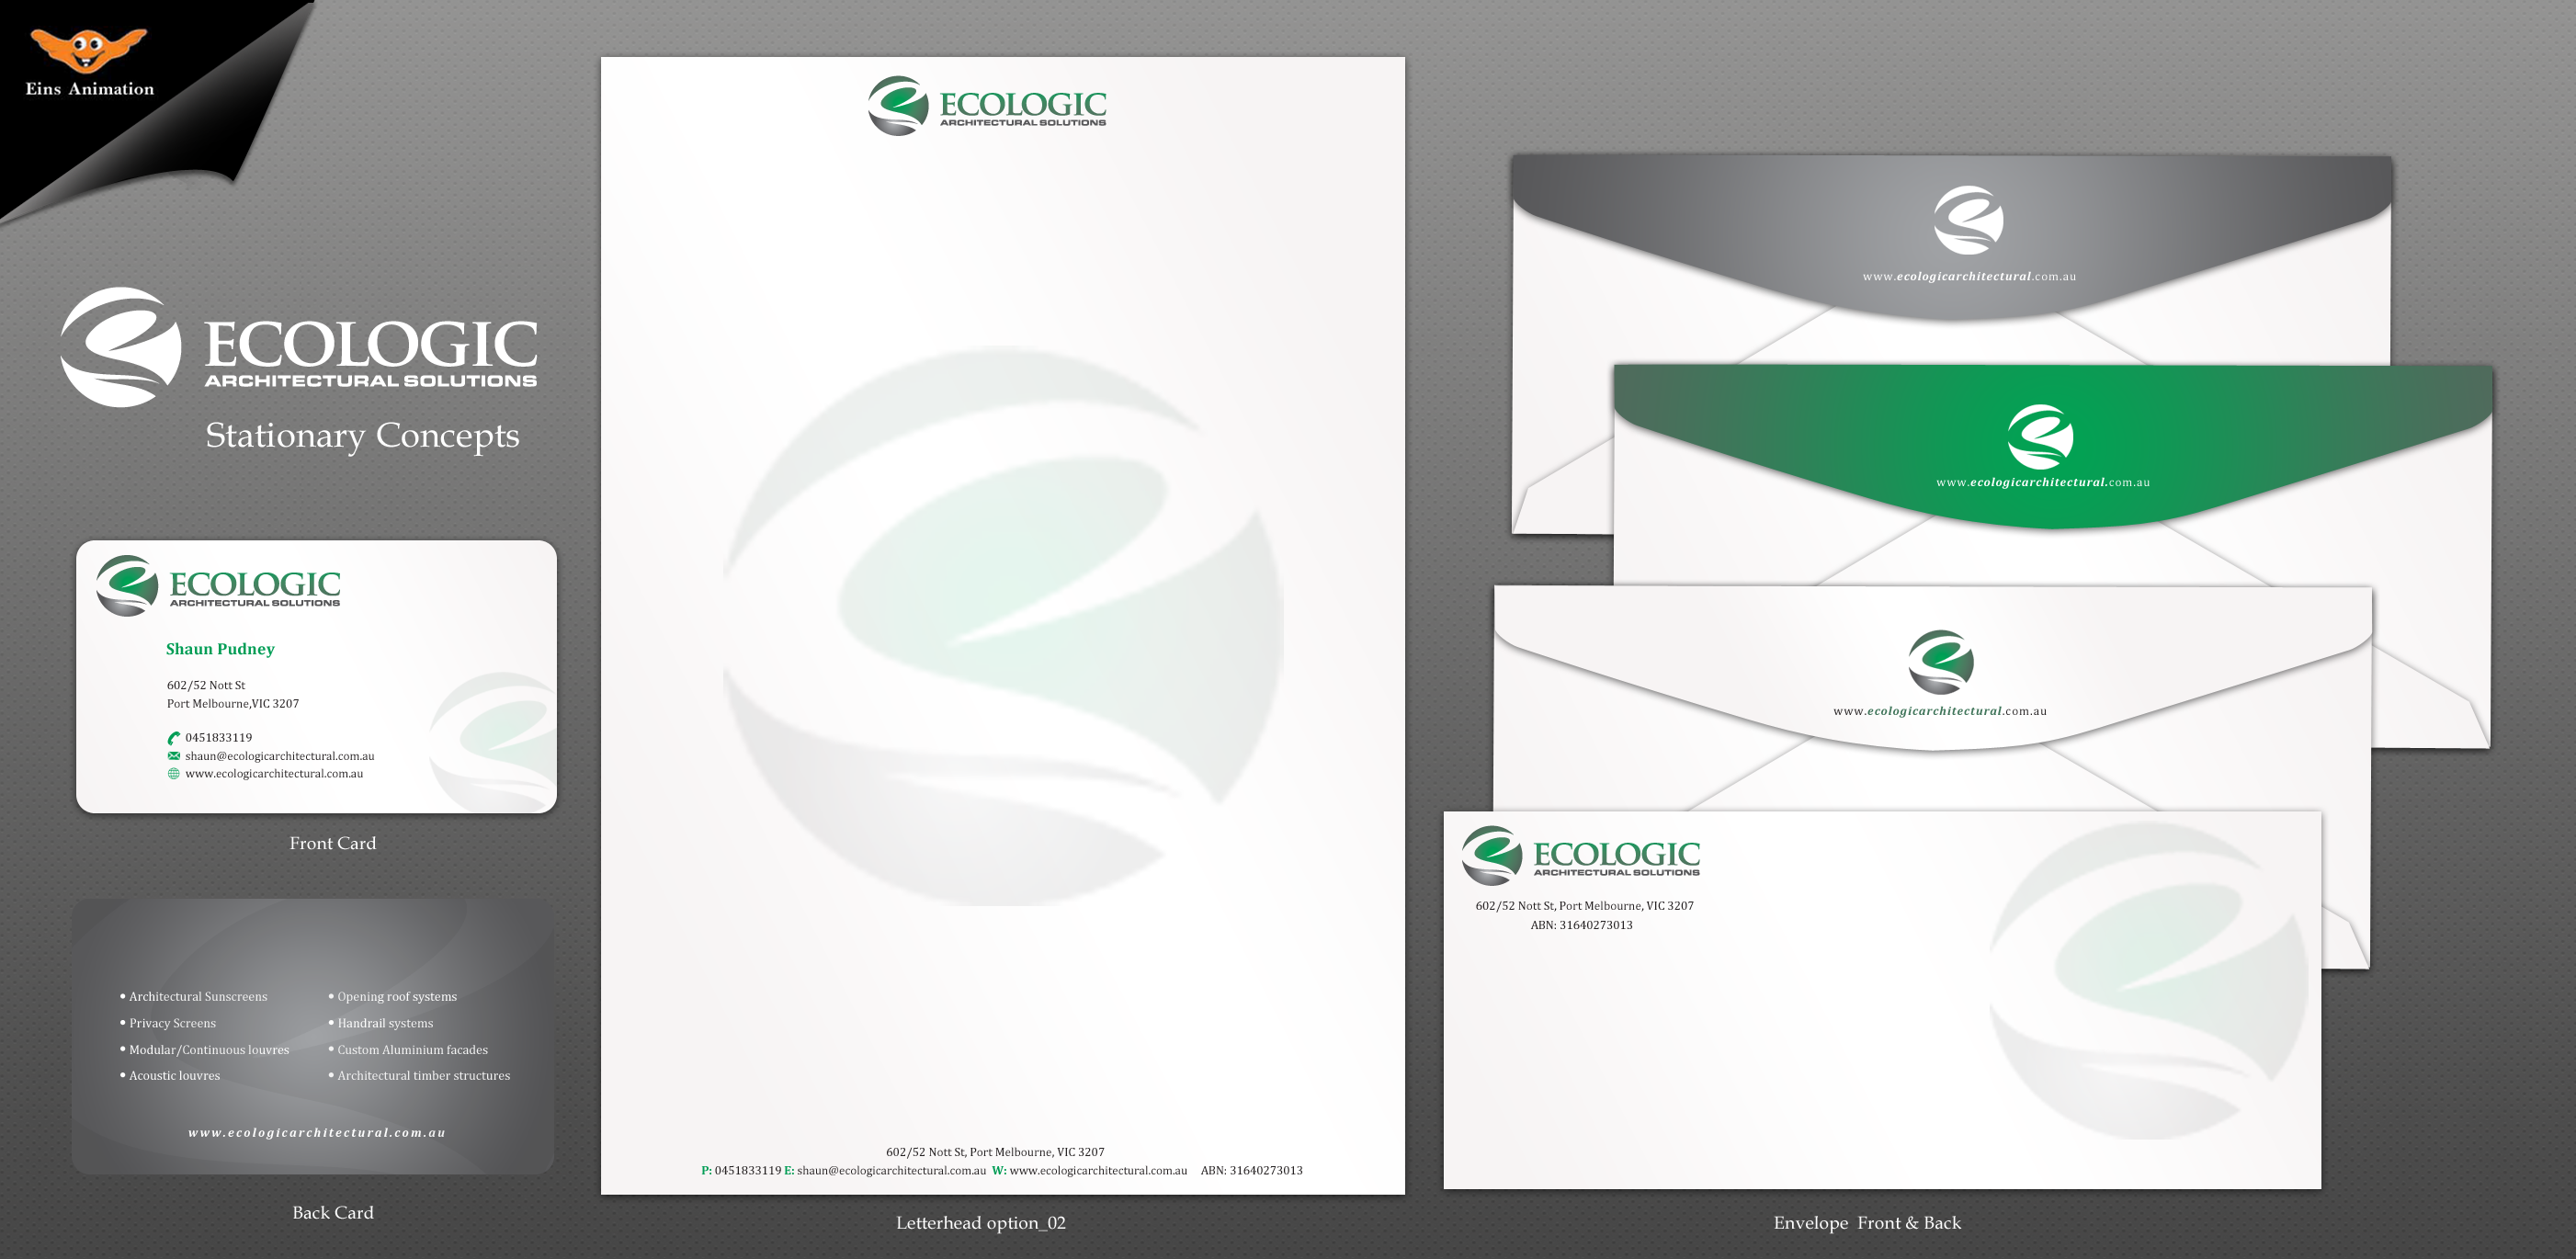 Business card design for Ecologic Architectural Solutions - Construction